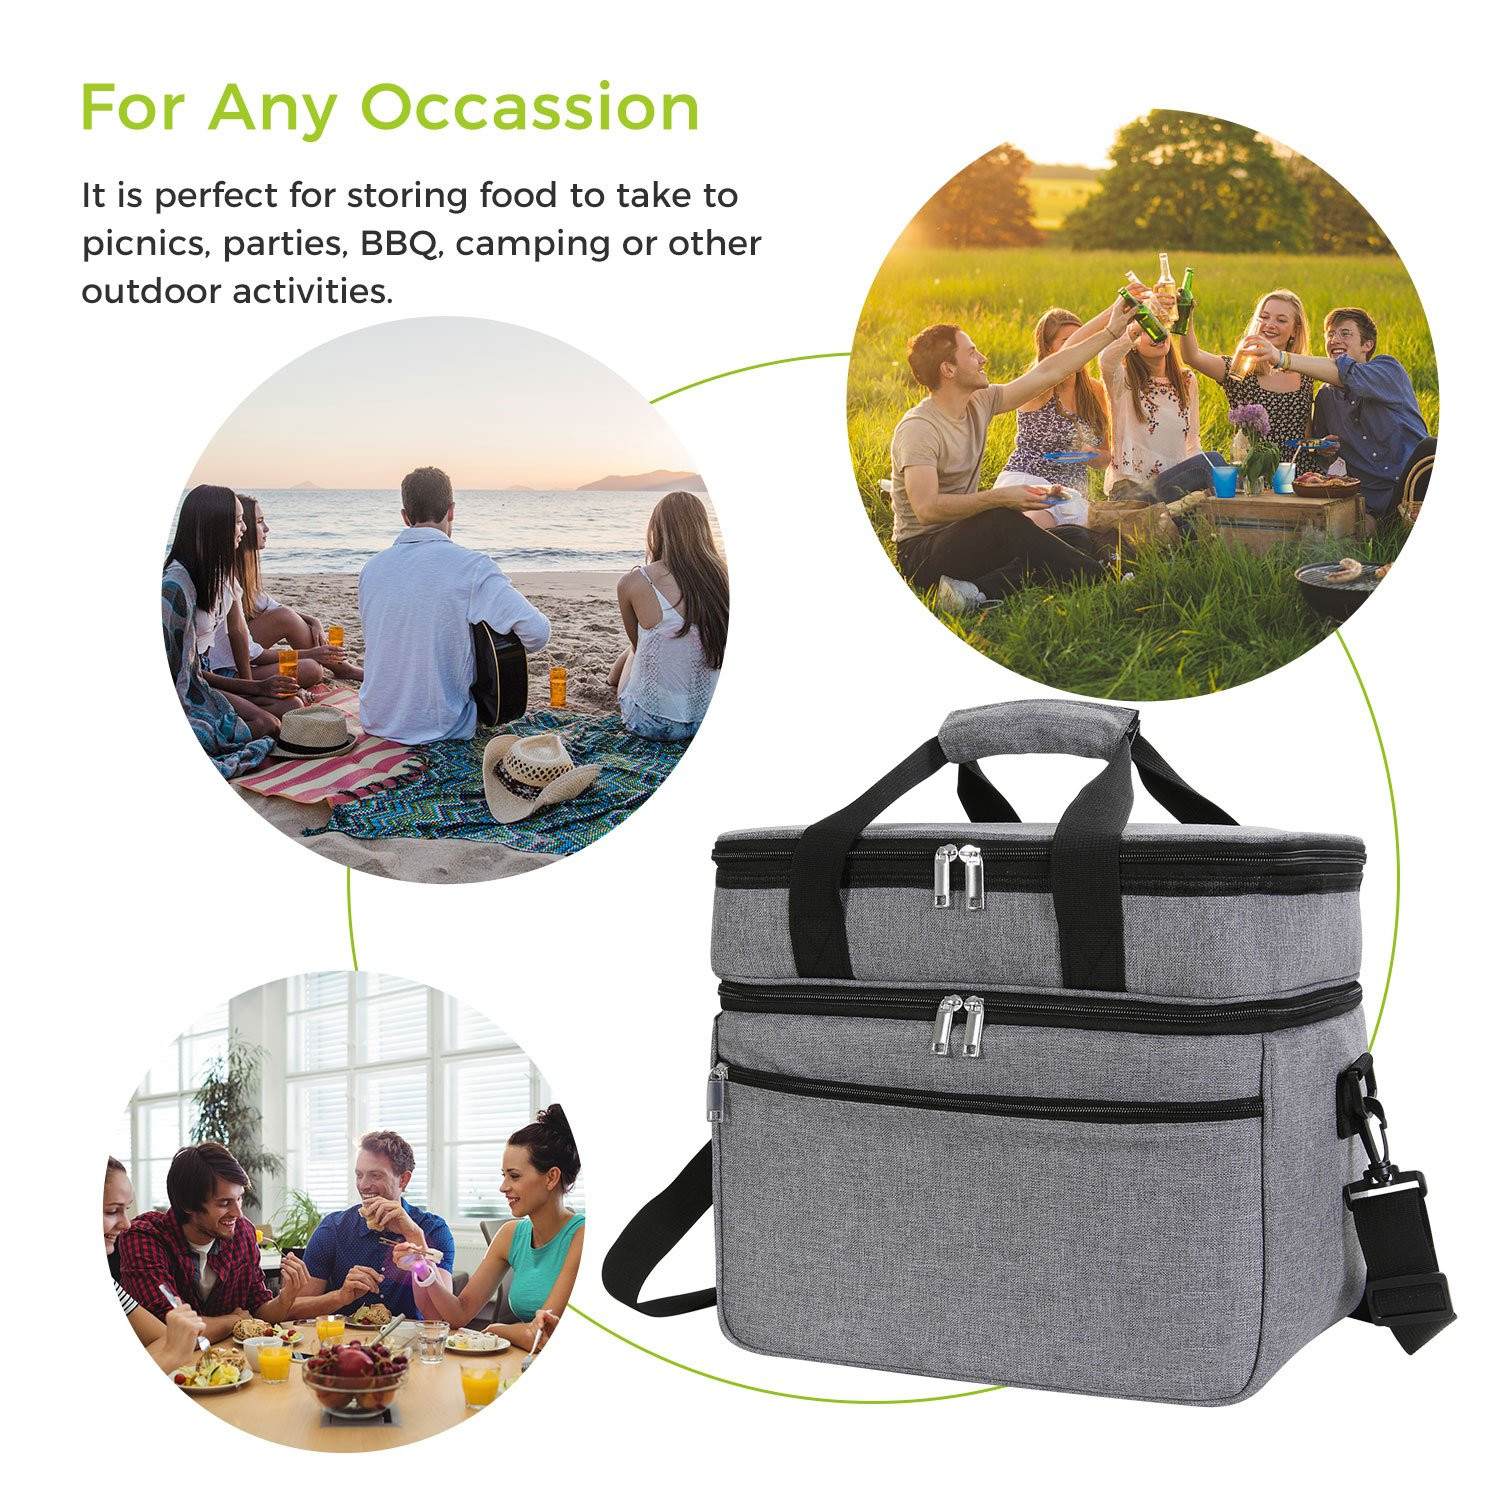 New Fashion Food Delivery Bag Felt Insulated  Cooler Lunch Bag with shoulder straps